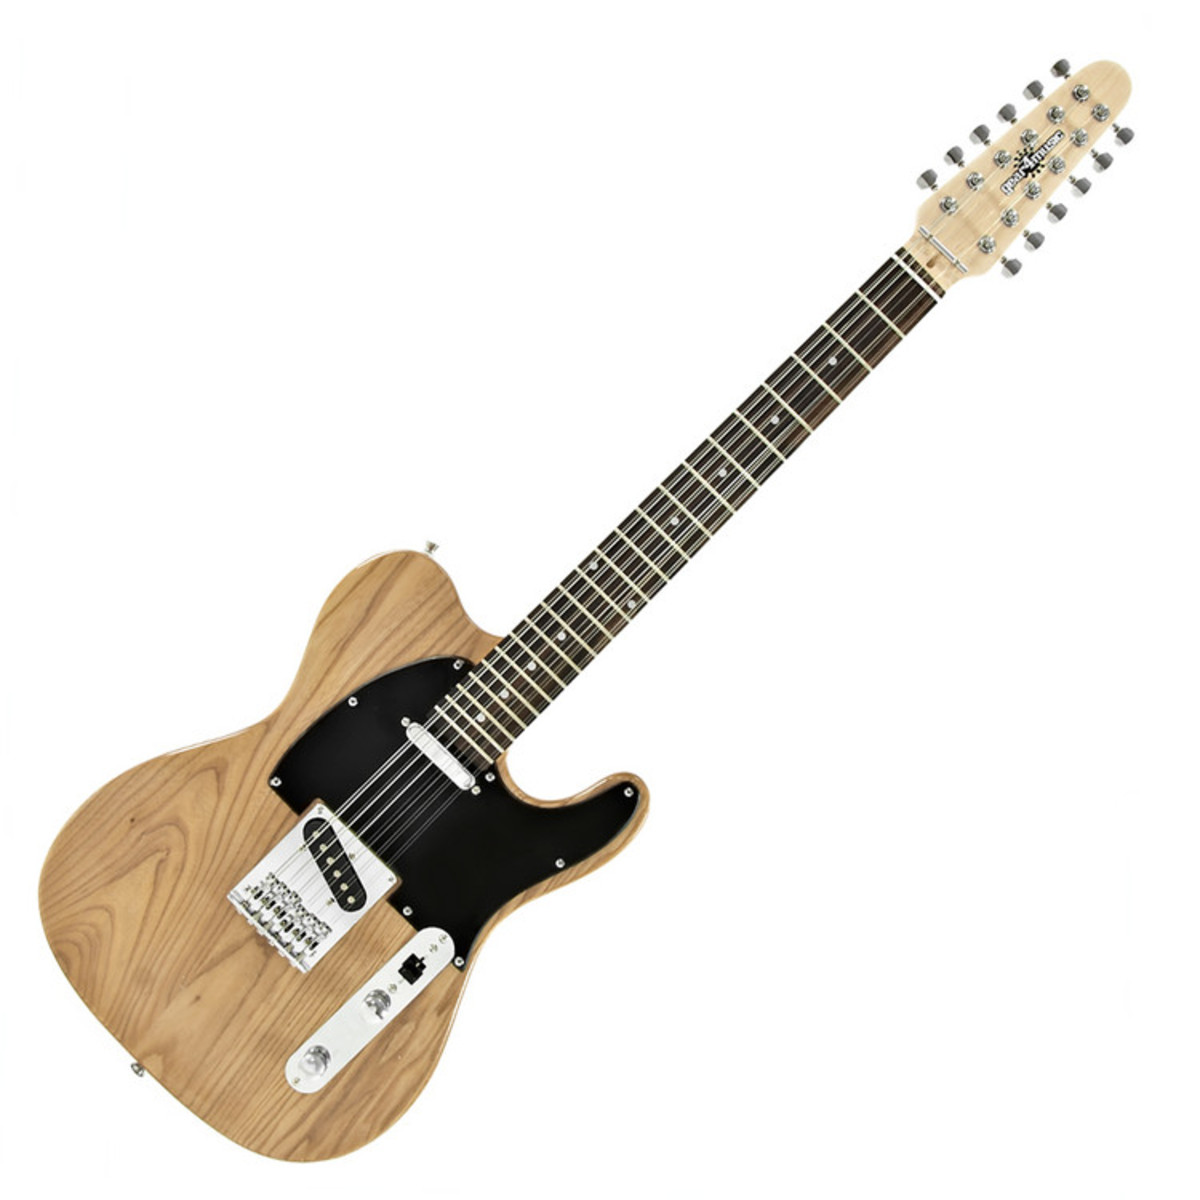 Electric 12 String Guitar : knoxville deluxe 12 string electric guitar by gear4music nearly new at ~ Hamham.info Haus und Dekorationen